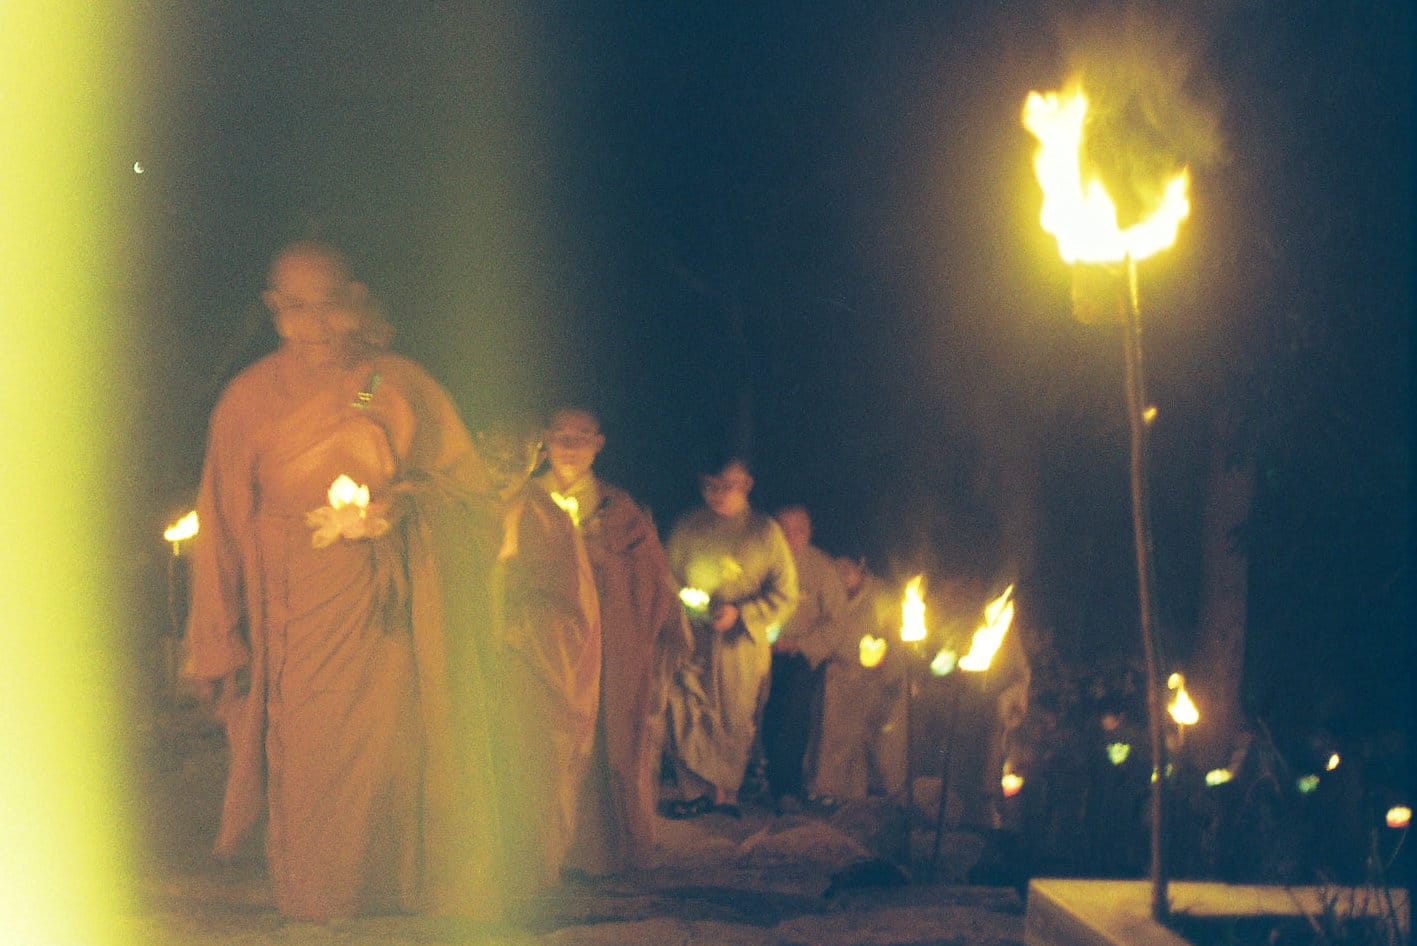 Image of monks on Wandering Soul's Day in Vietnam